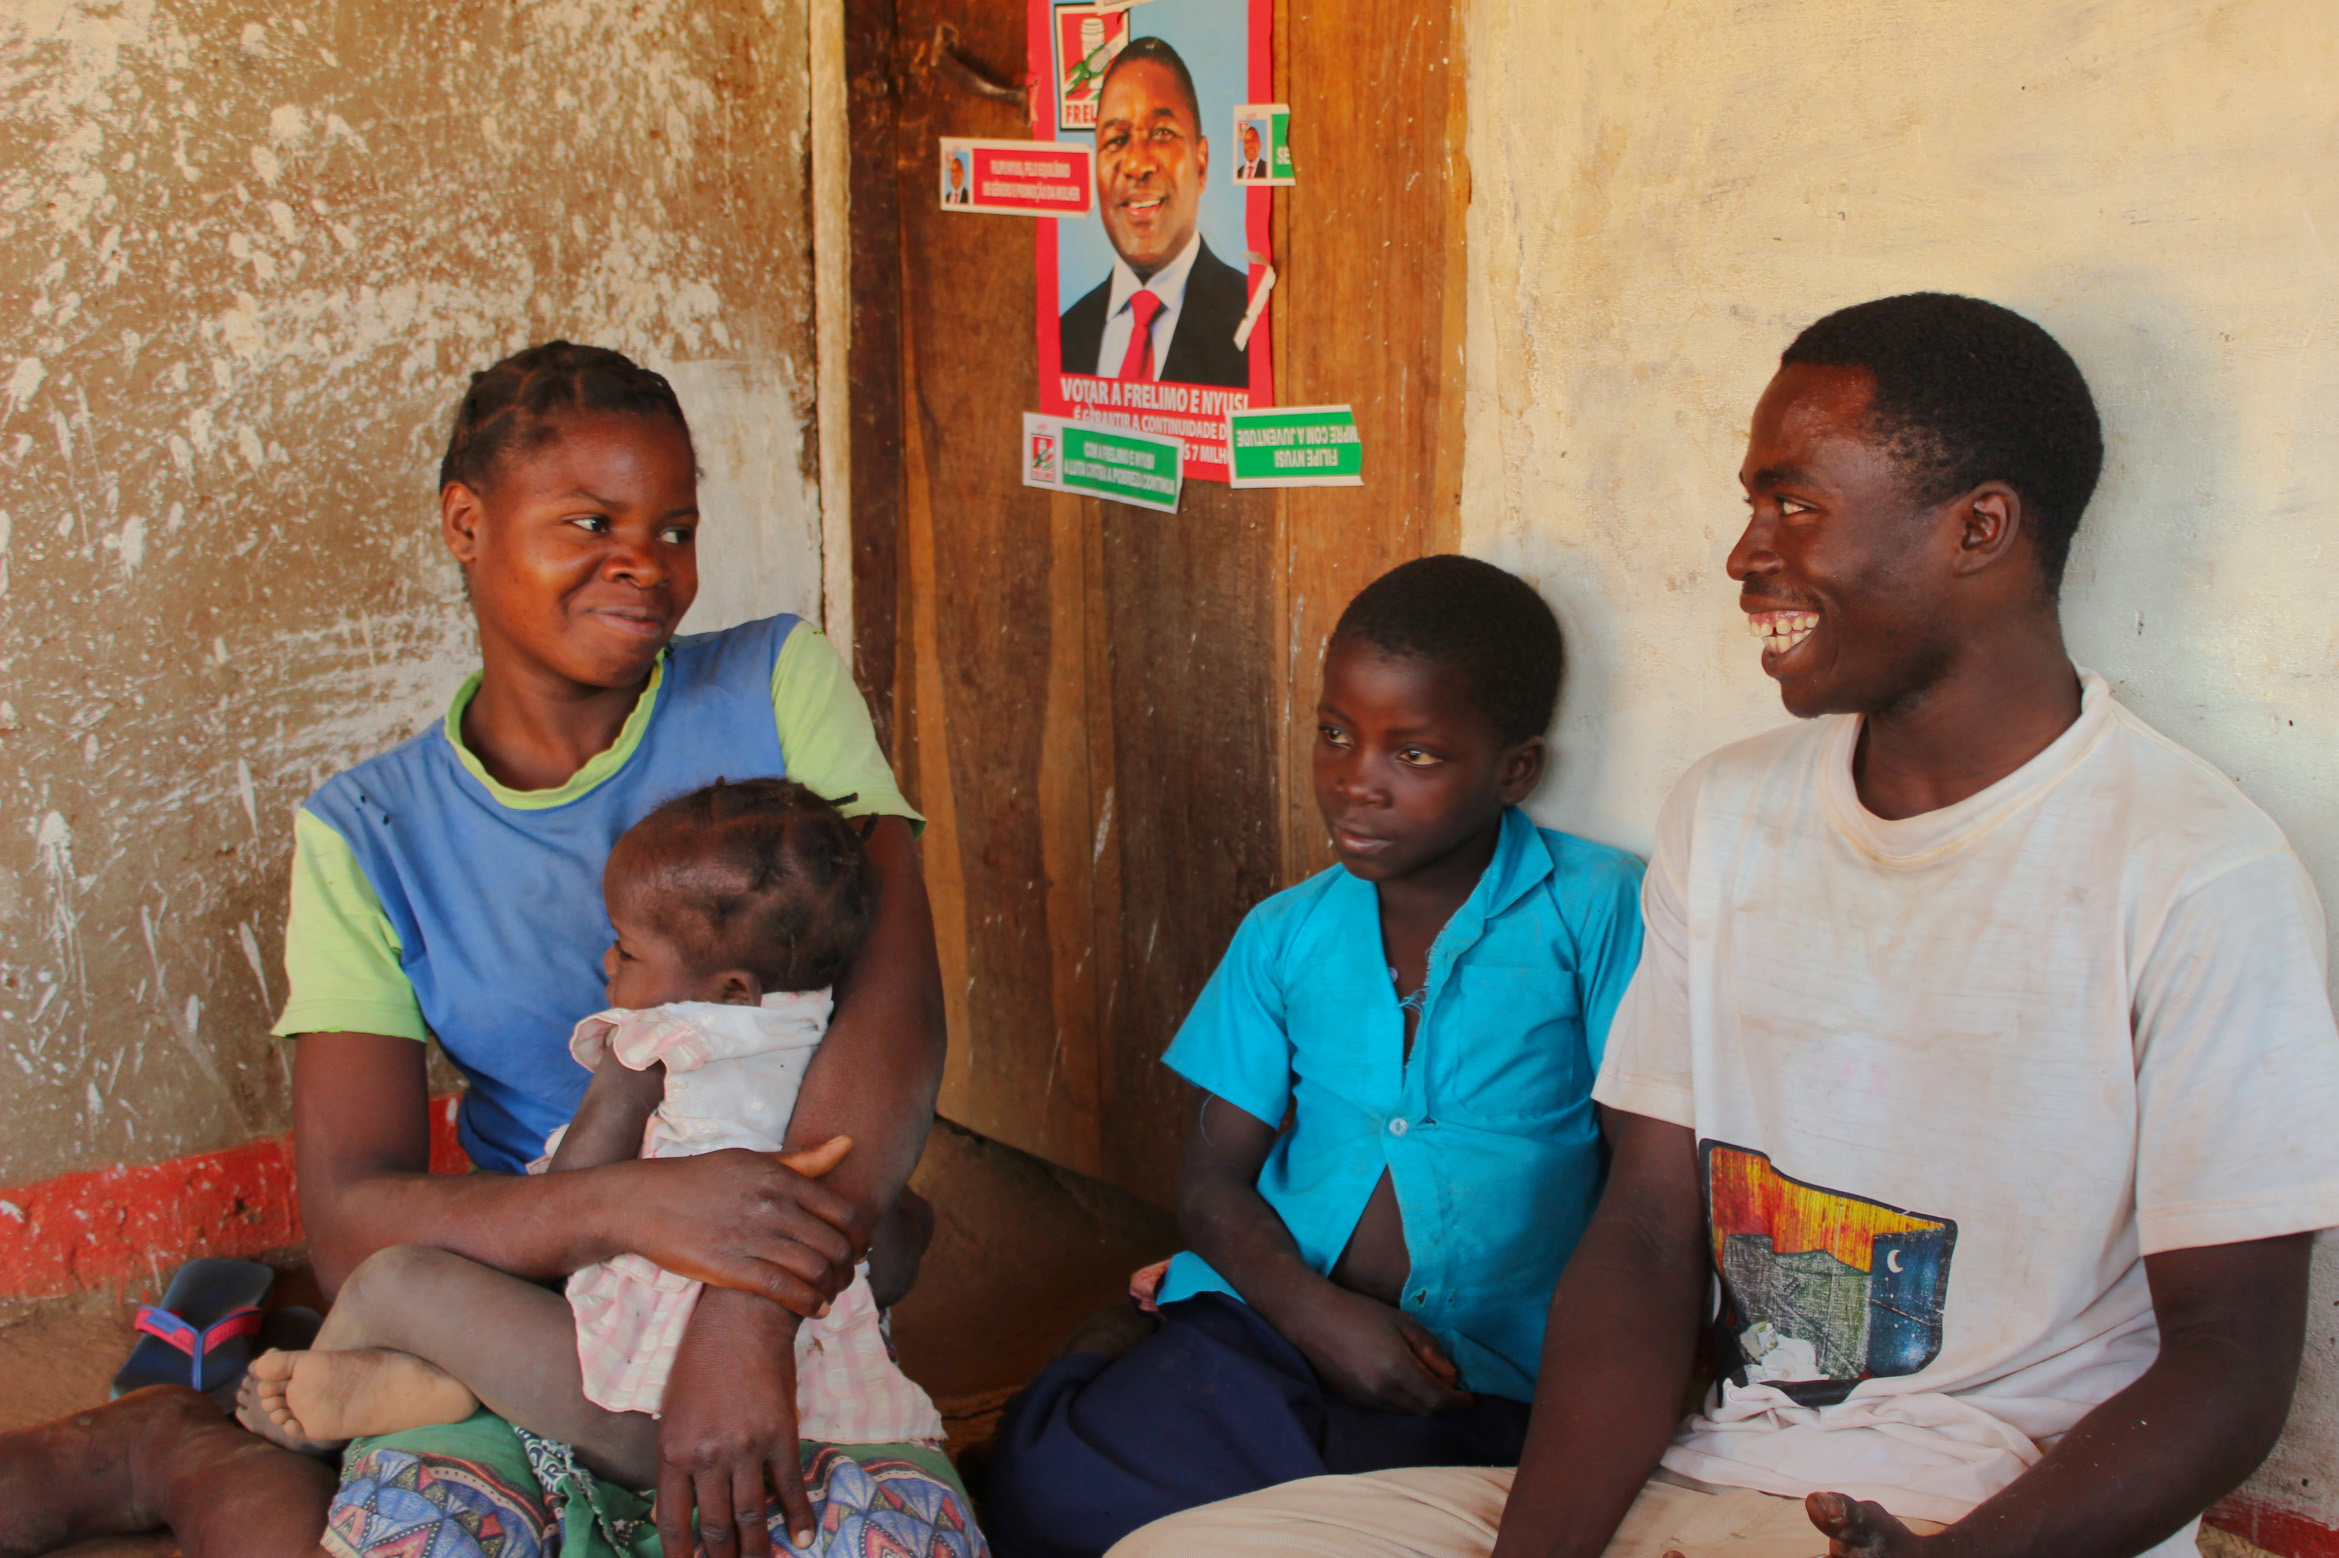 A husband and wife, who are farmers, sit with their children in the home in Mozambique. This family participated in CGAP's Smallholder Diaries. Photo by Erin Scronce